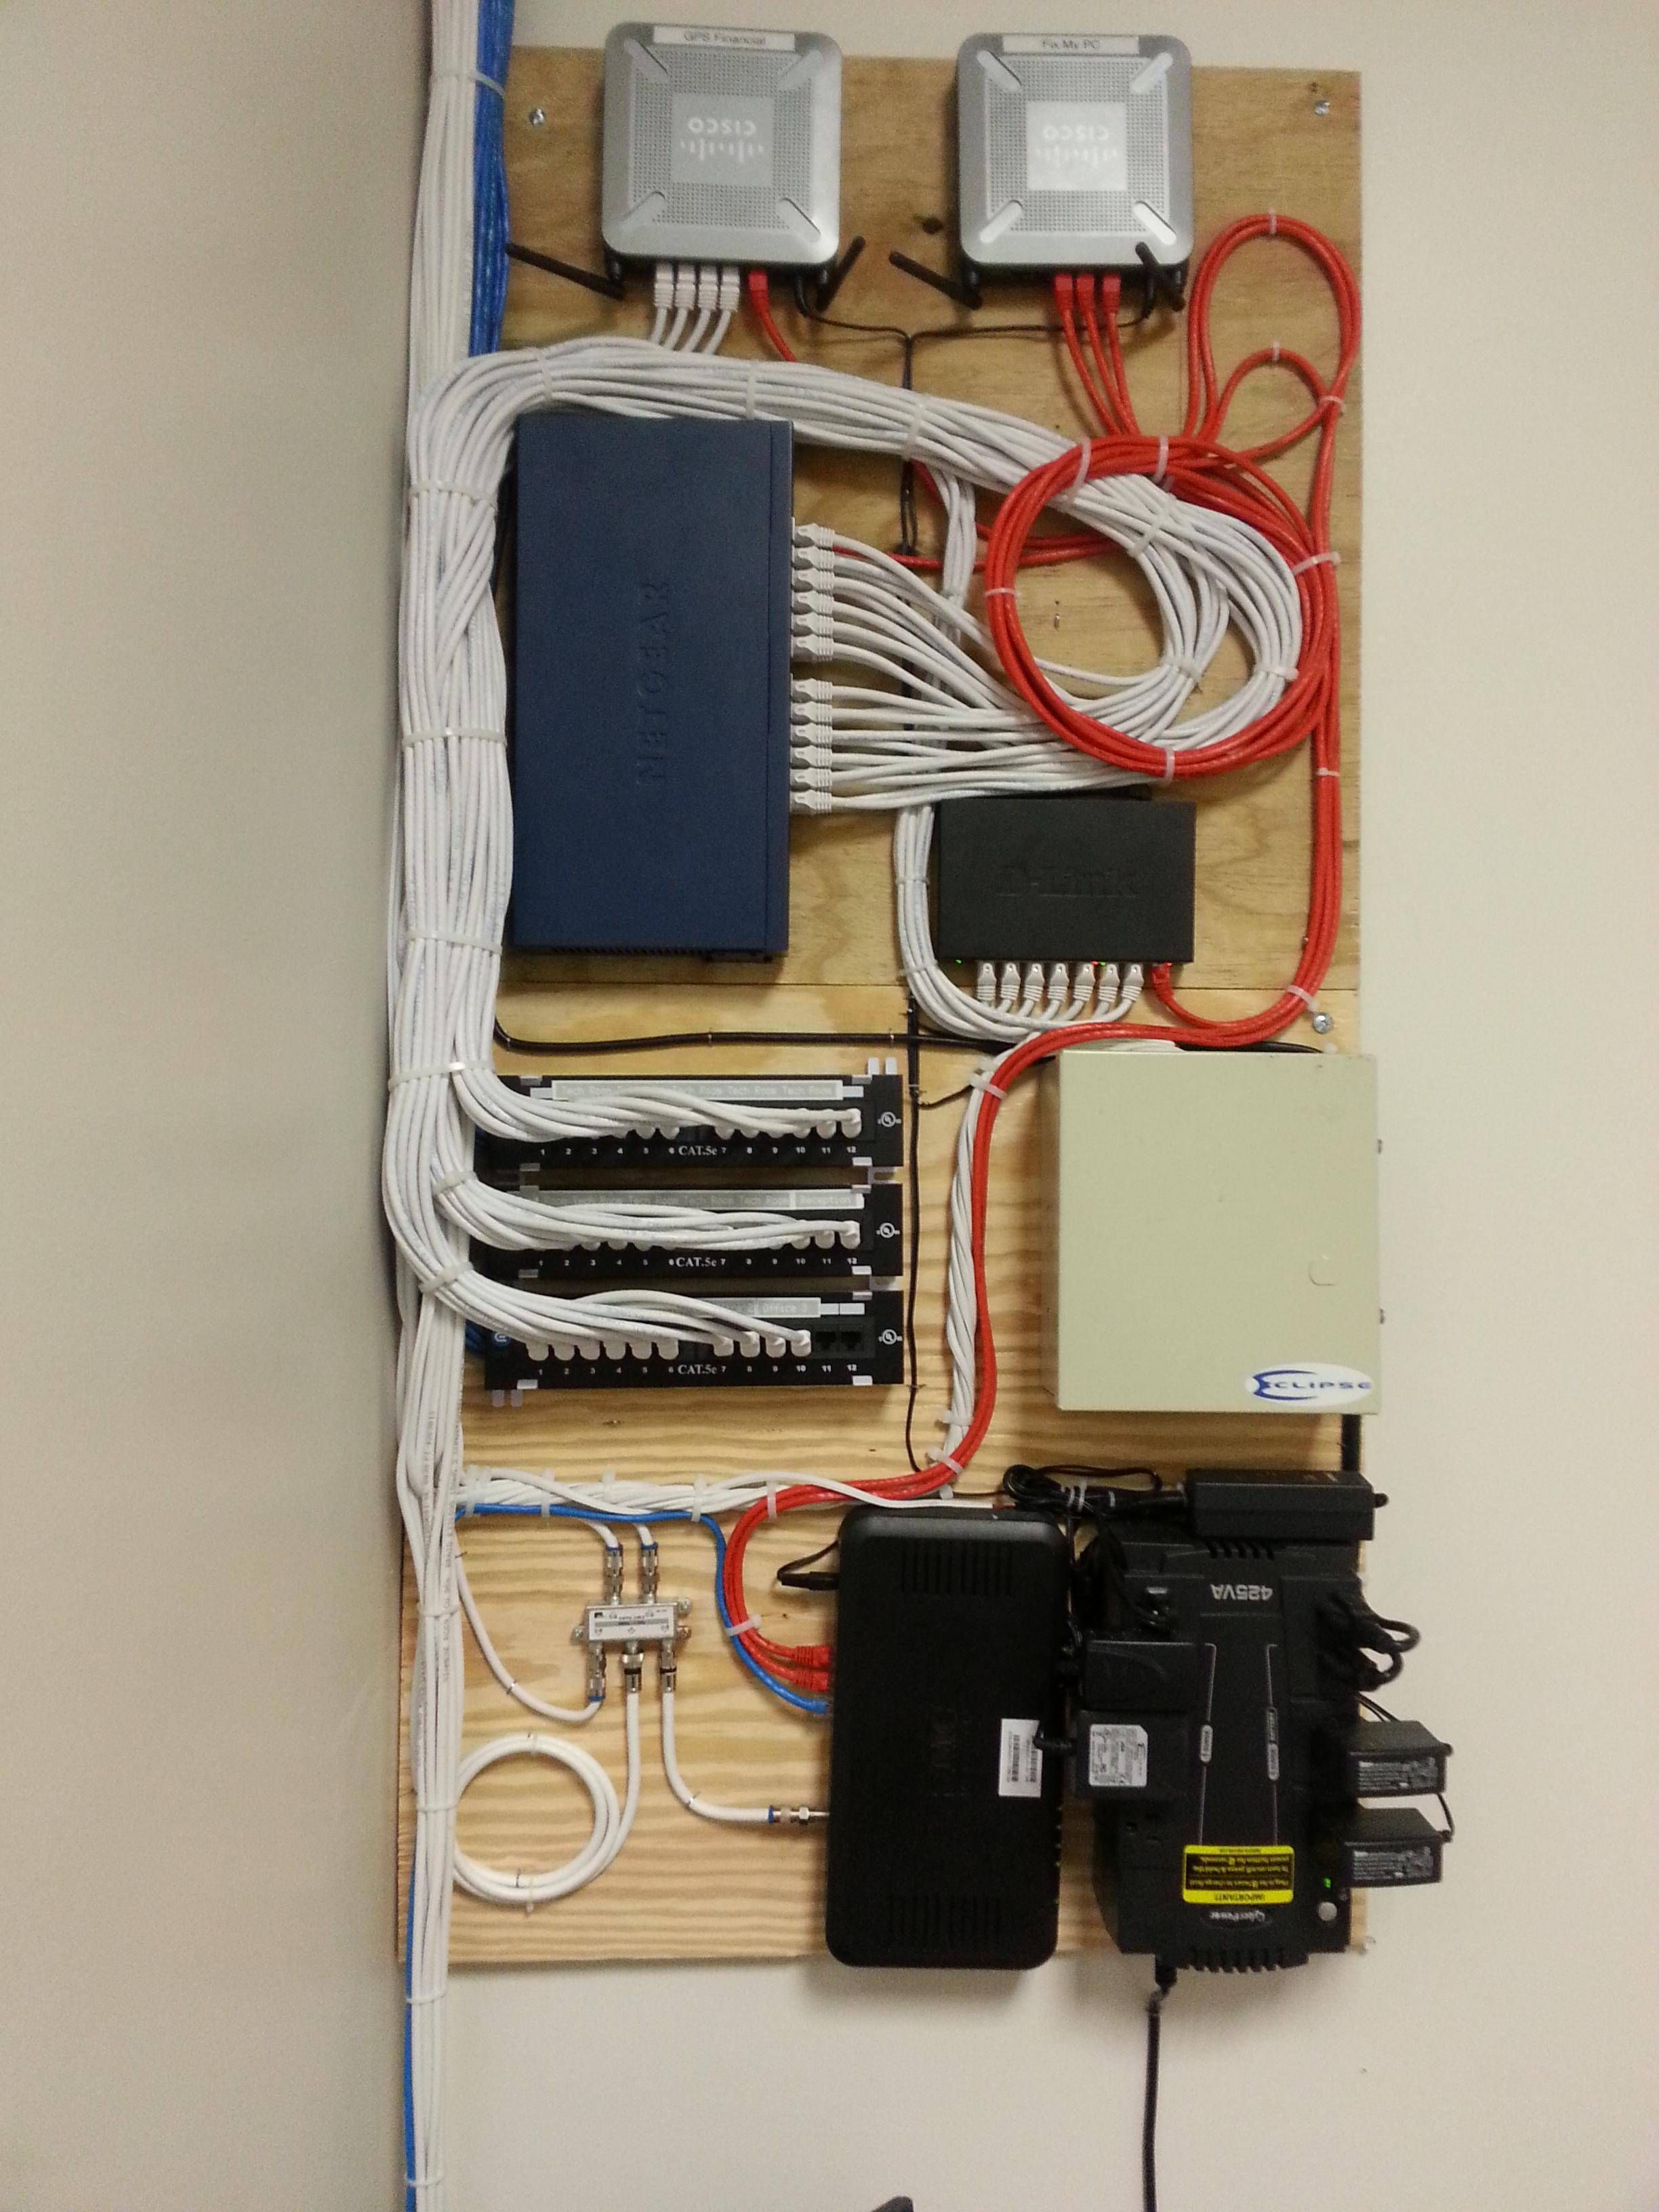 cable management structured wiring structured cabling server rack home theater rooms wire [ 2448 x 3264 Pixel ]